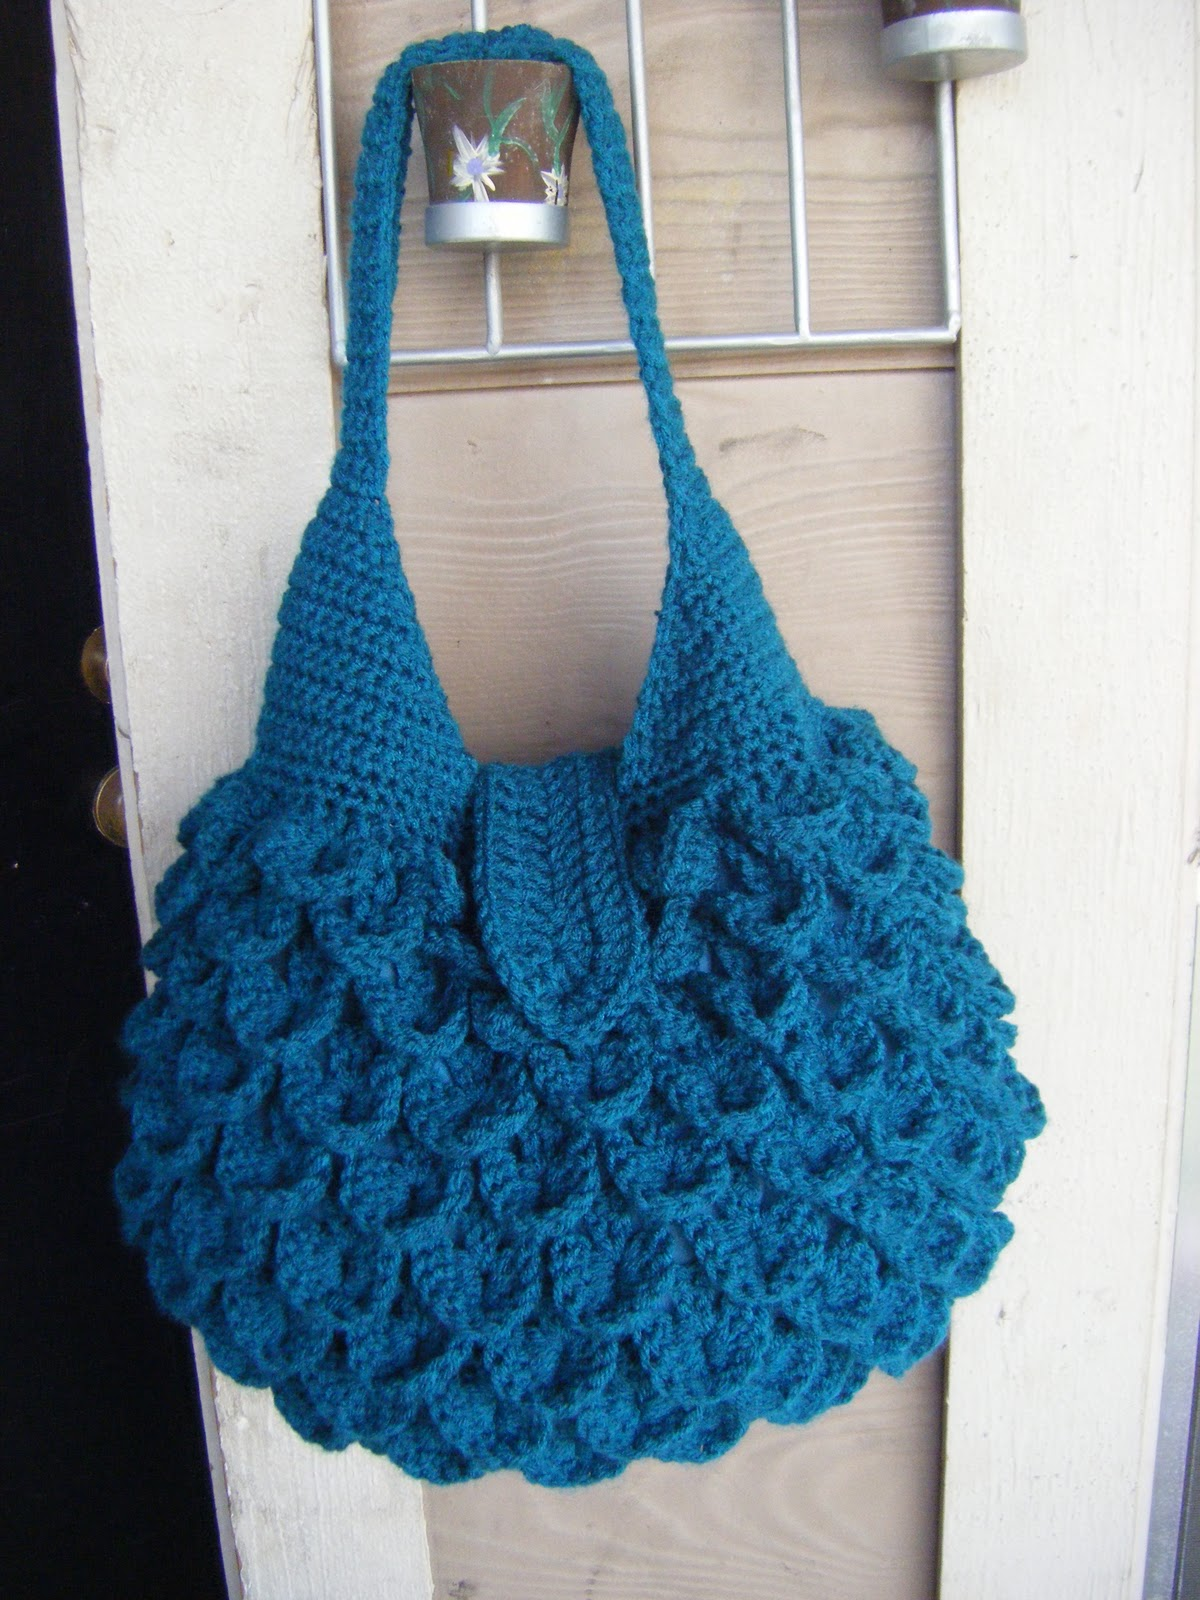 How To Make Crochet Purse : Best Patterns: Crocodile Crochet Bag PATTERN